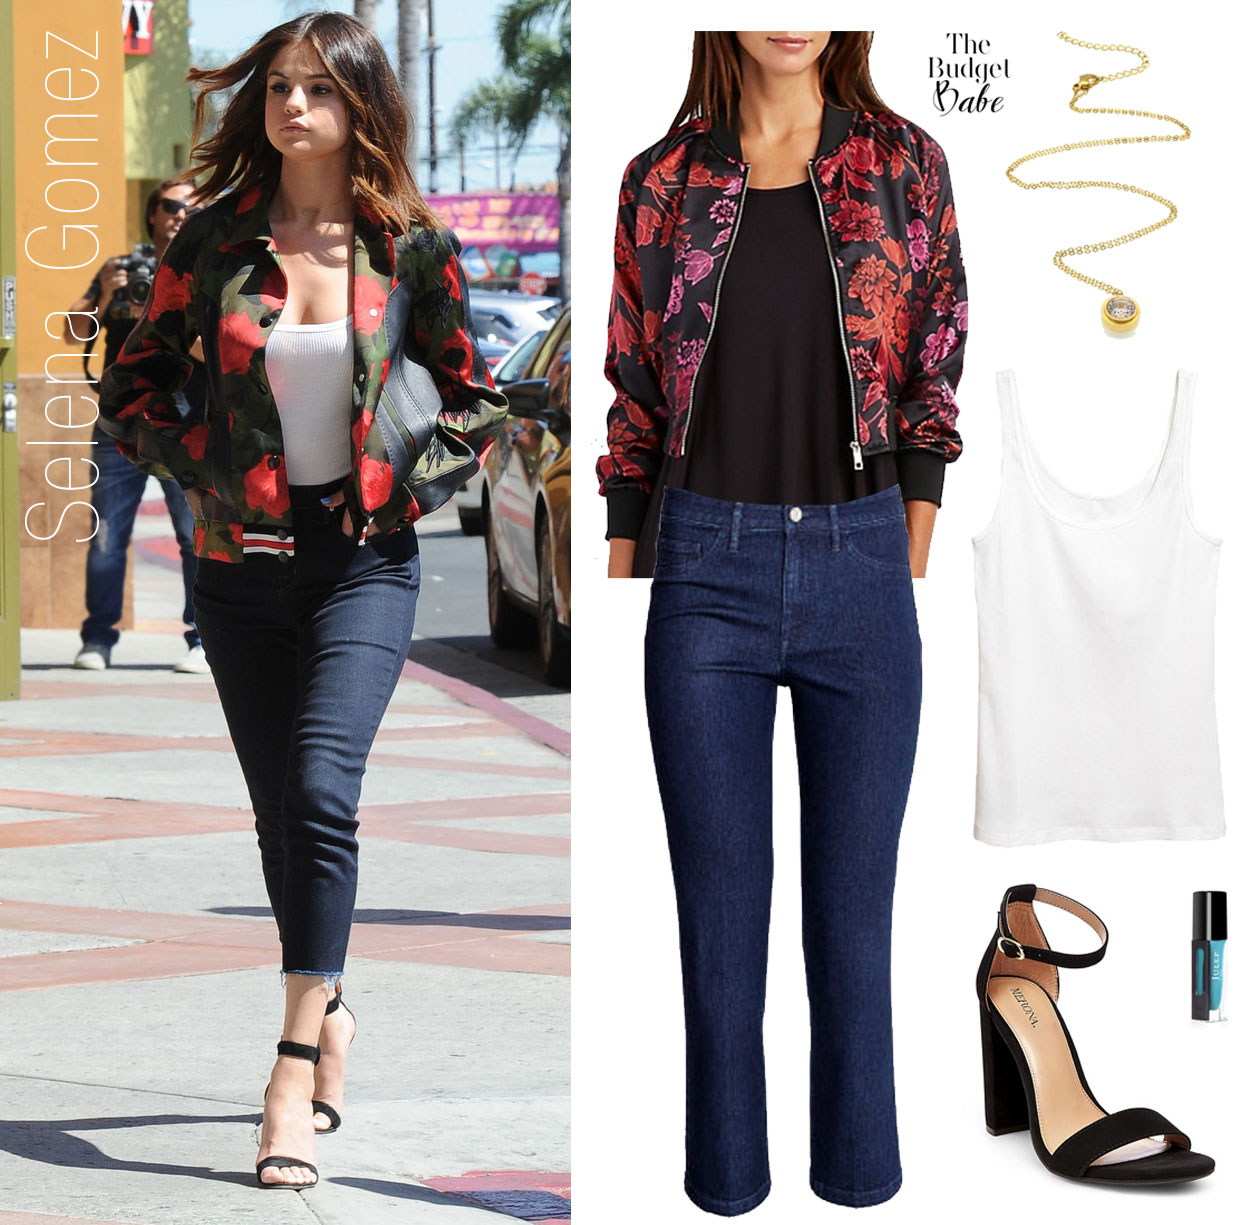 Selena Gomez slays in a red rose bomber jacket and skinny jeans.